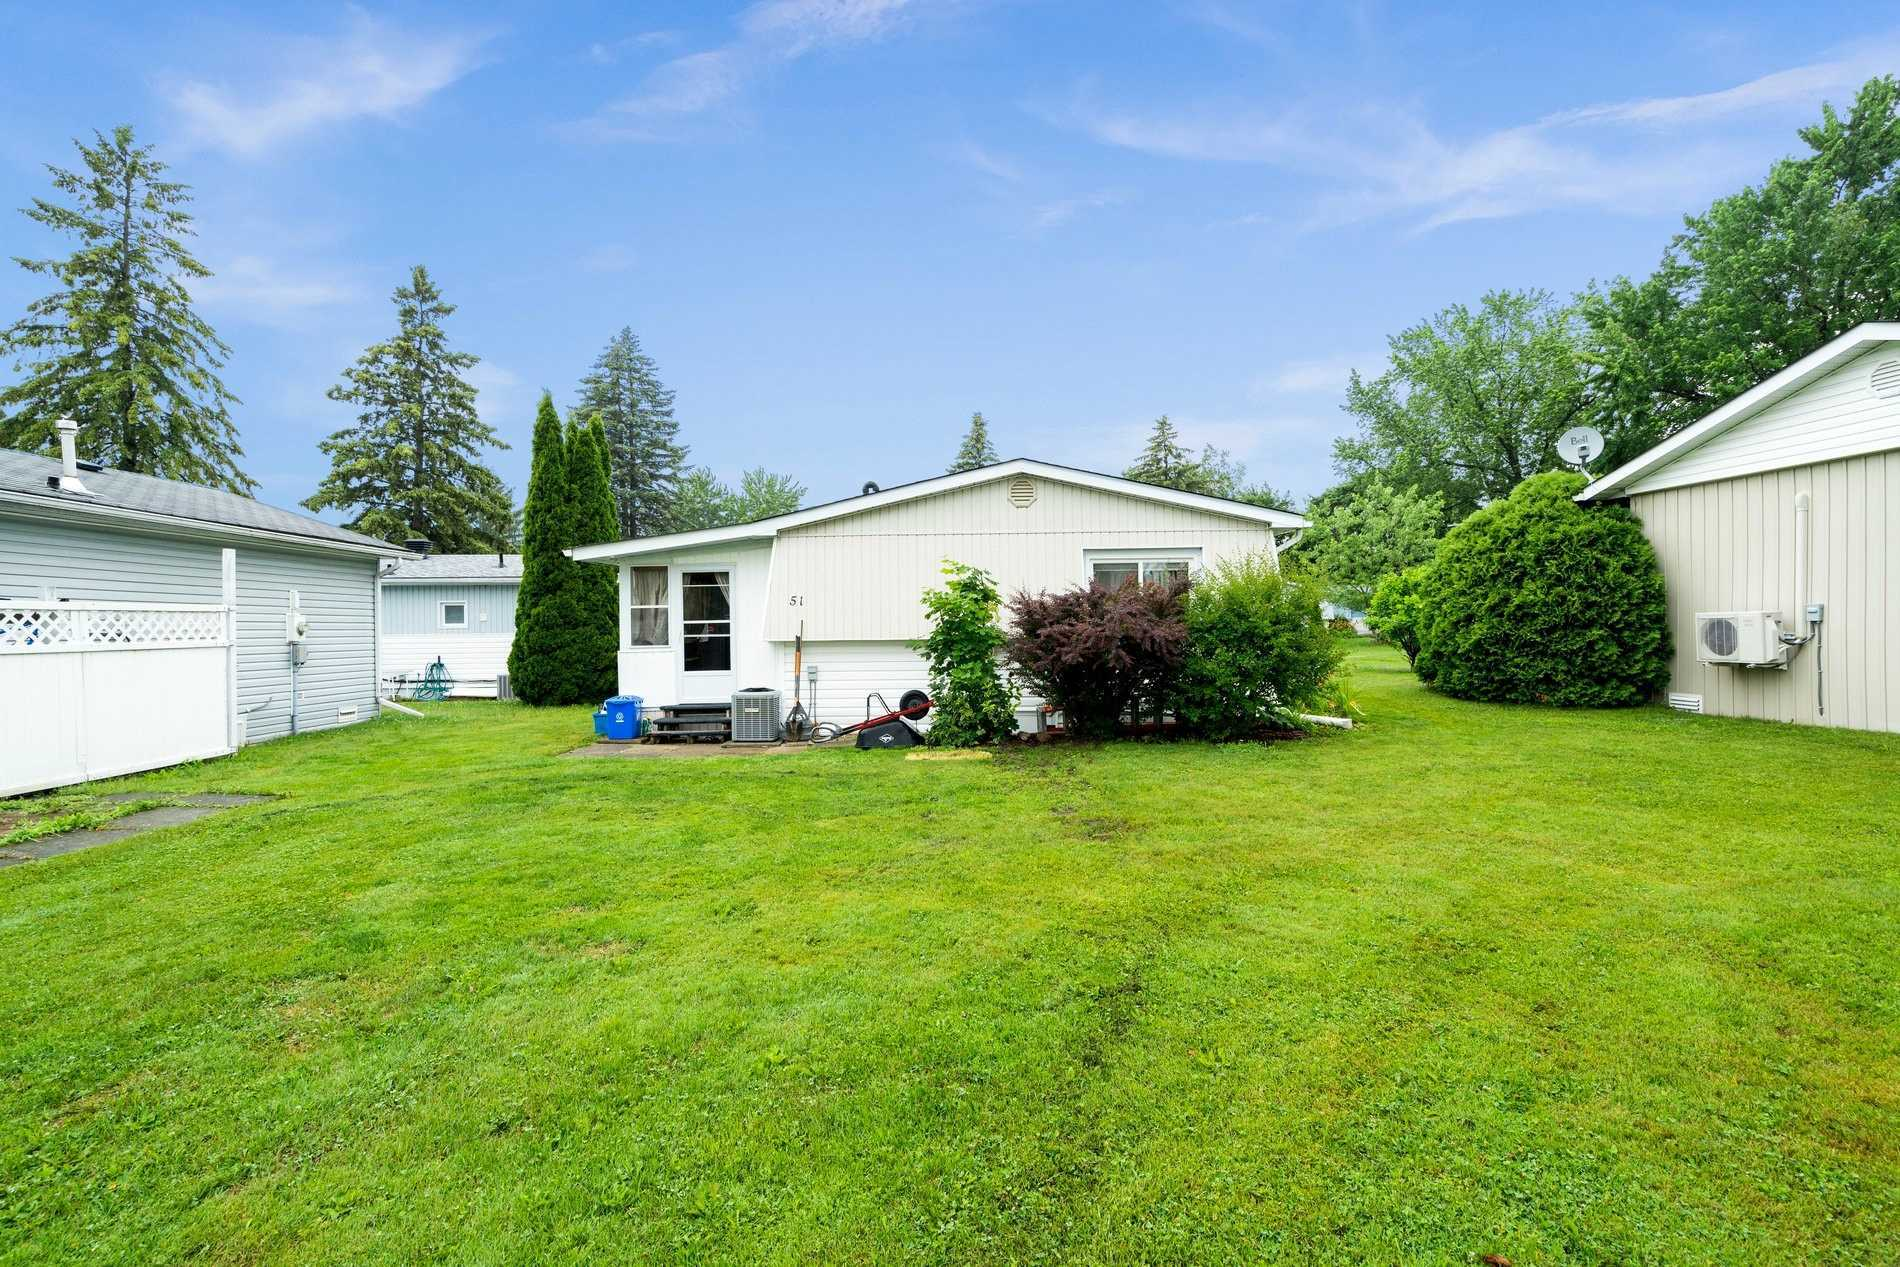 Detached house For Sale In Innisfil - 51 Hawthorne Dr, Innisfil, Ontario, Canada L9S 1P1 , 2 Bedrooms Bedrooms, ,2 BathroomsBathrooms,Detached,For Sale,Hawthorne